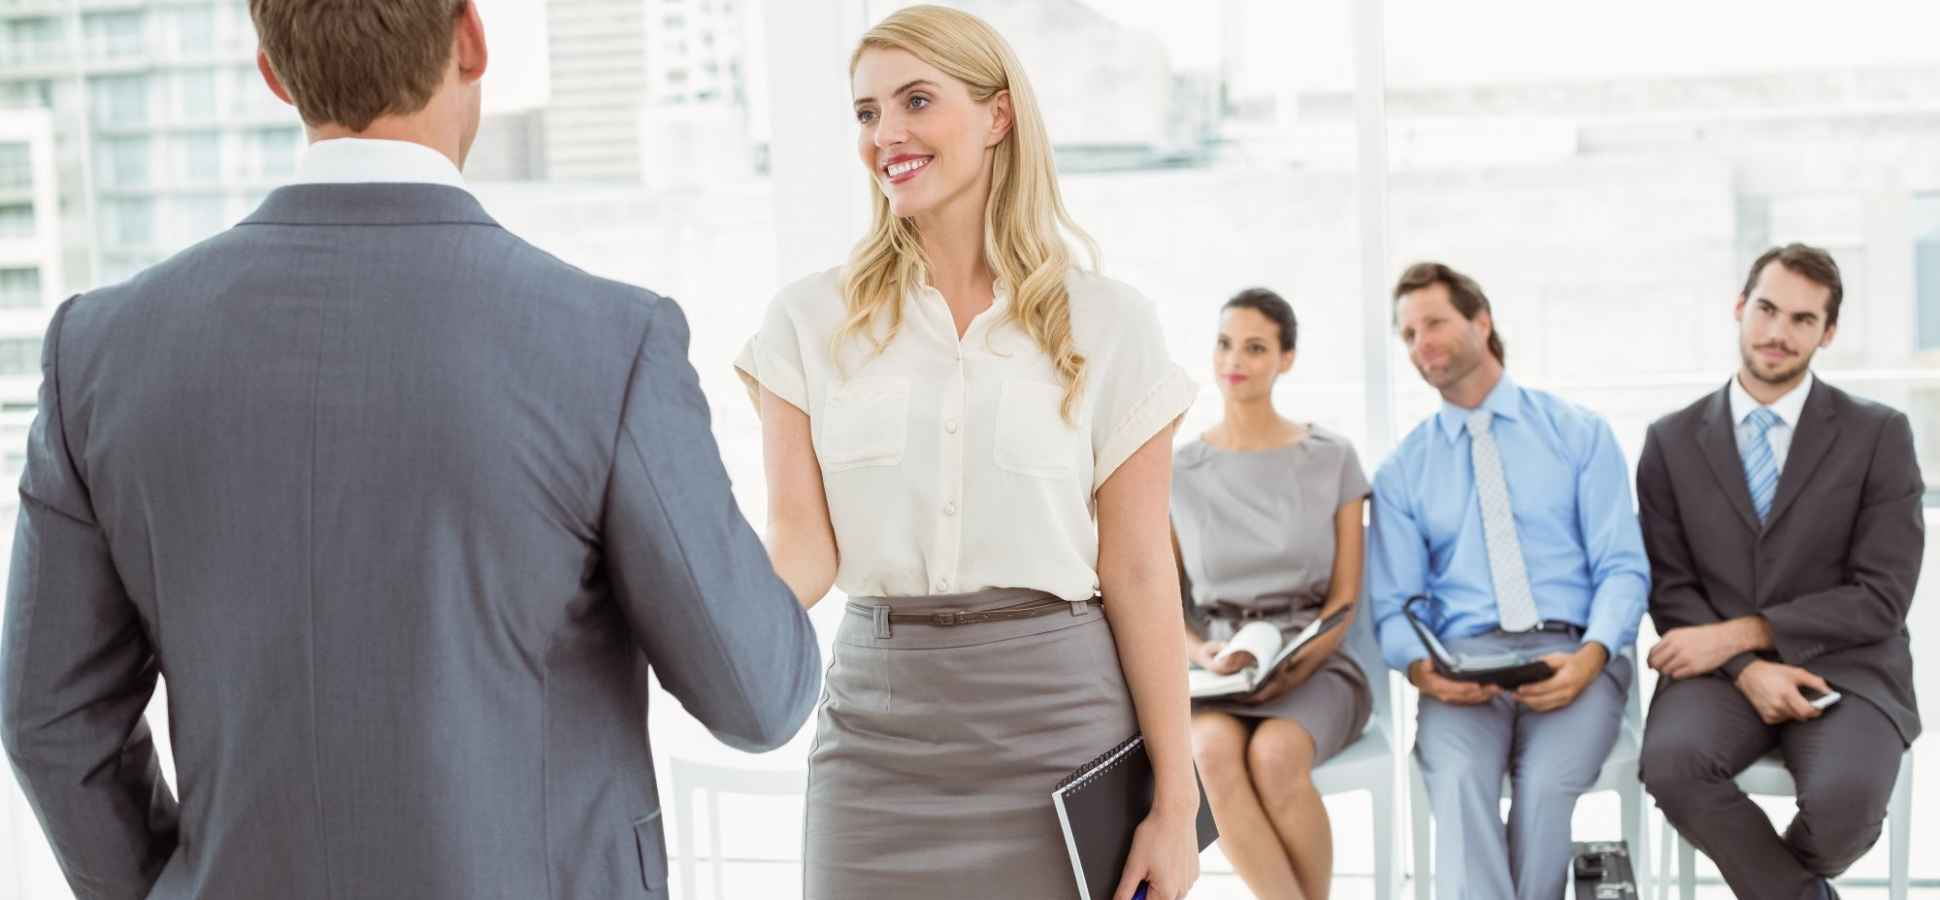 How to Dress for a Job Interview Outfit (and Make a Good Impression)